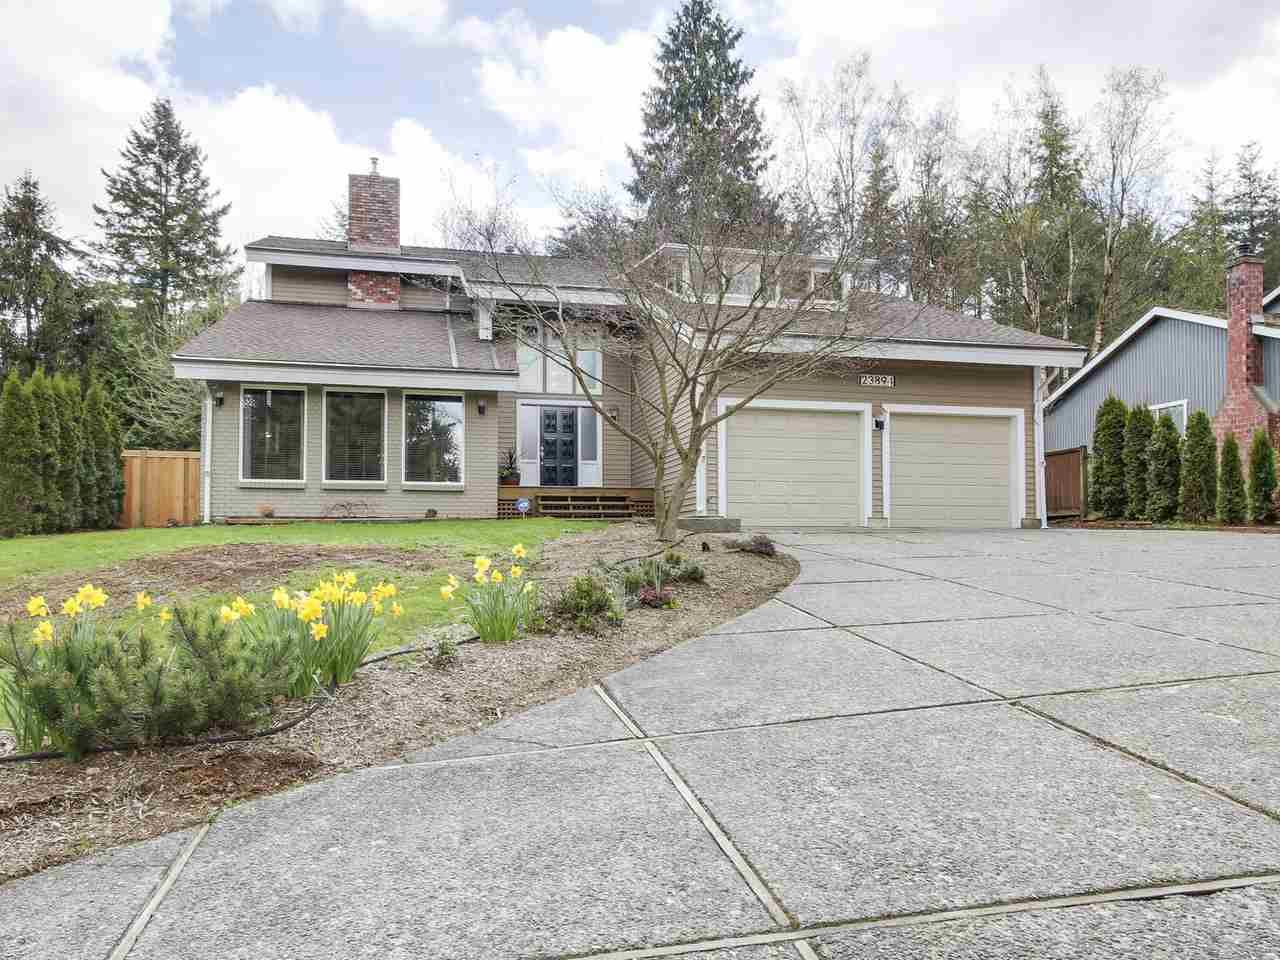 Main Photo: 23894 58A AVENUE in : Salmon River House for sale : MLS®# R2156141